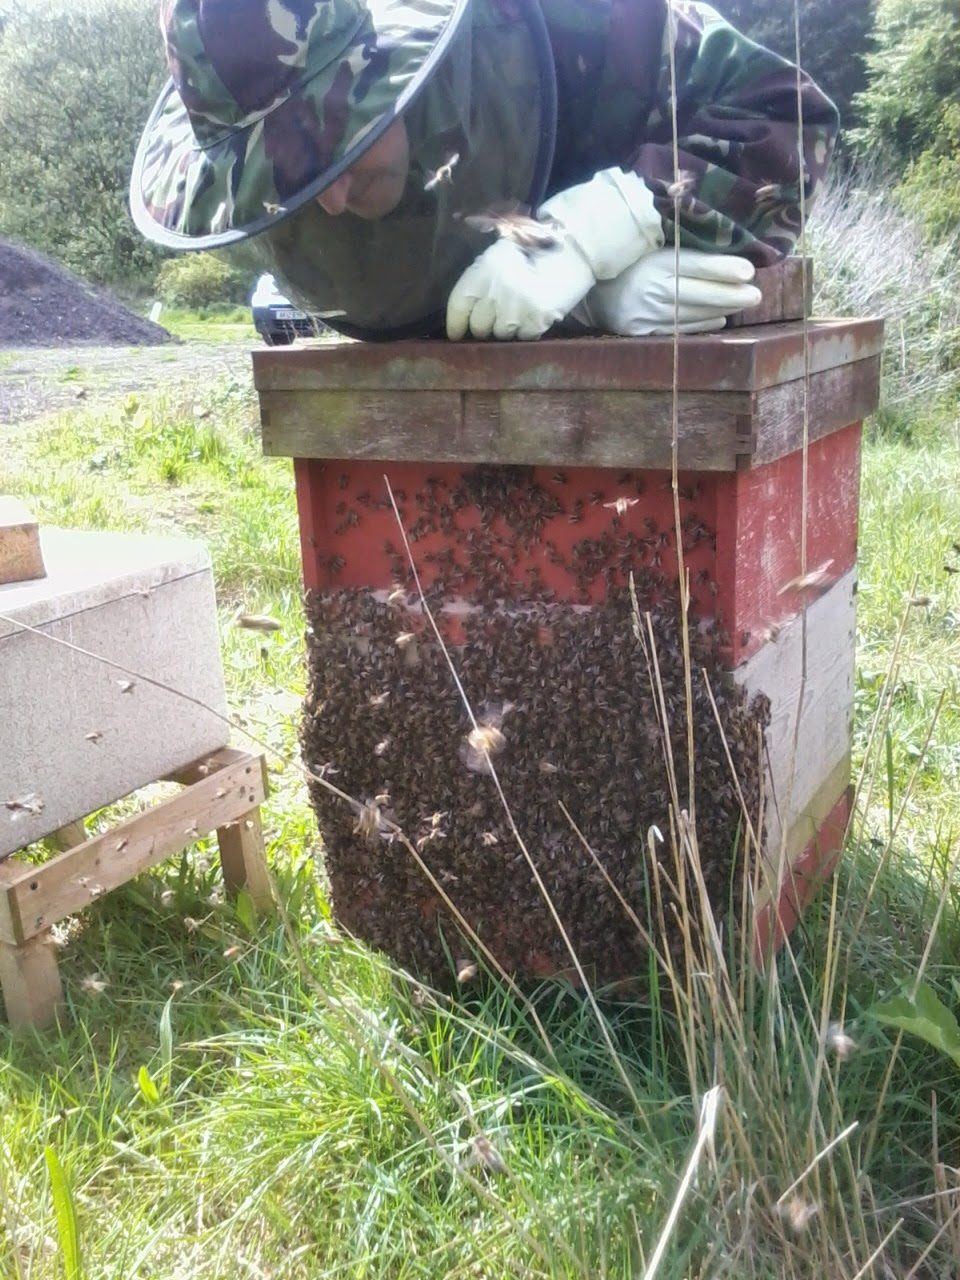 Beehive full to overflowing with bees.